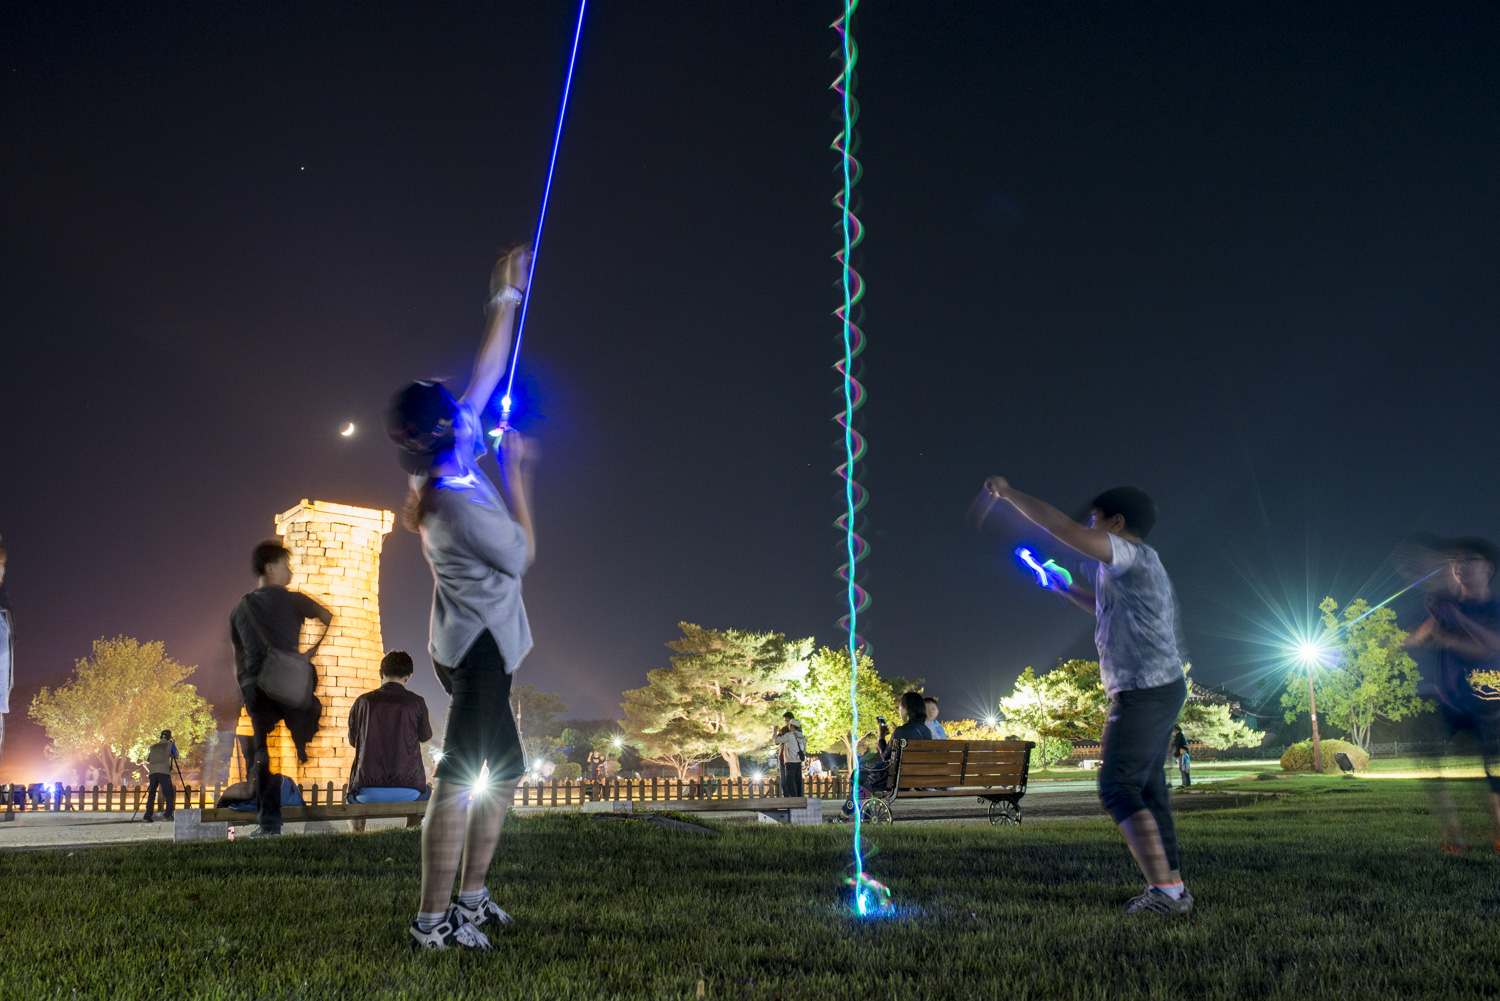 A family is having fun with some glowing helicopter toys. In the background is Cheomseongdae Observatory. Built in the 7th century A.D., it is the oldest surviving observatory in Eastern Asia. The moon is hanging out above the observatory.